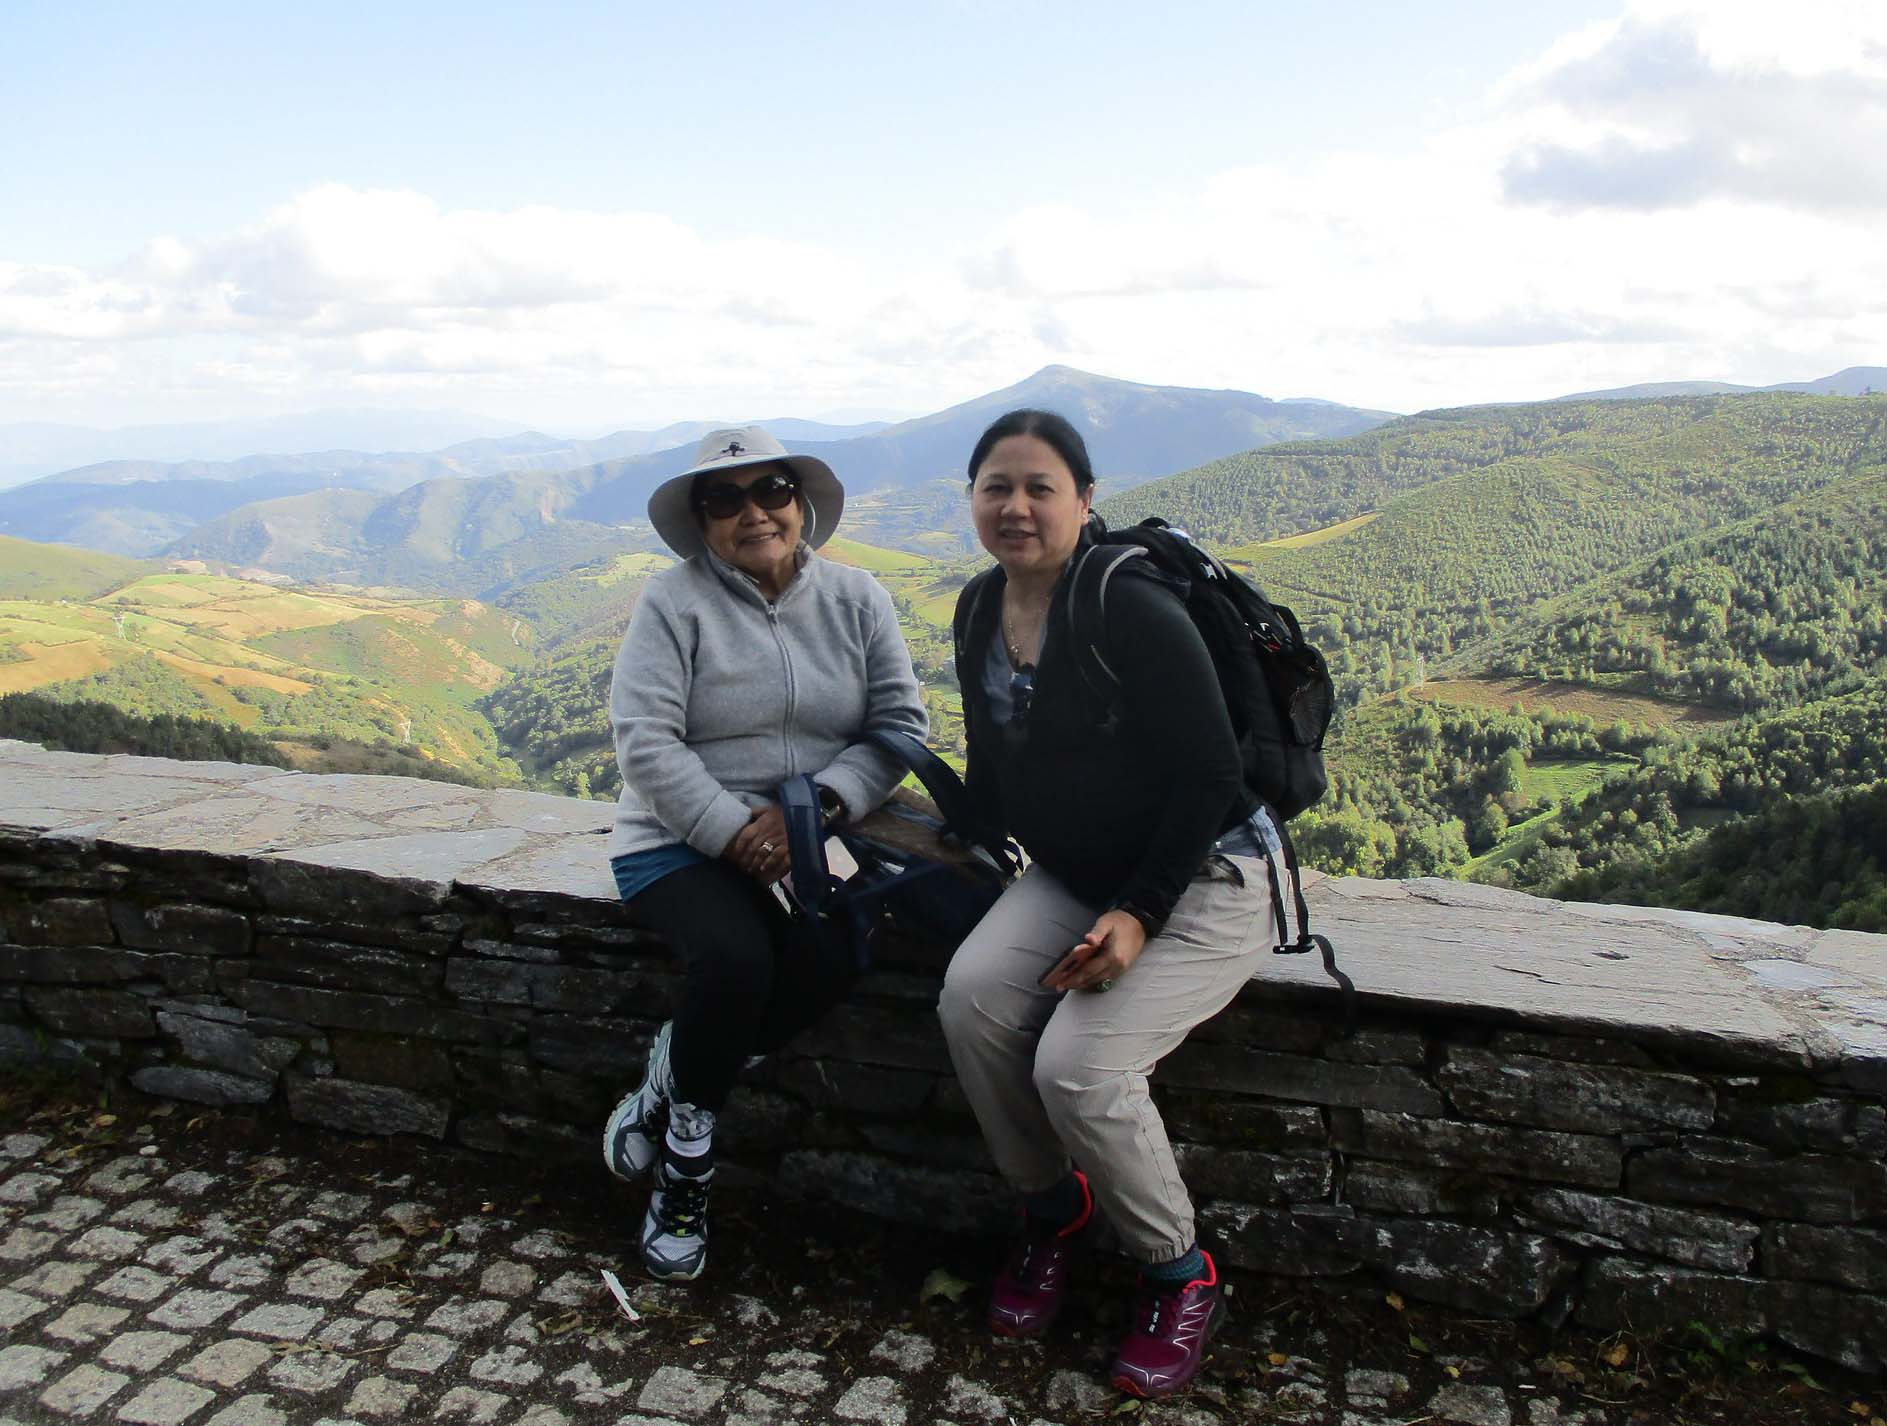 Camino de Santiago Tour - September 30, 2019